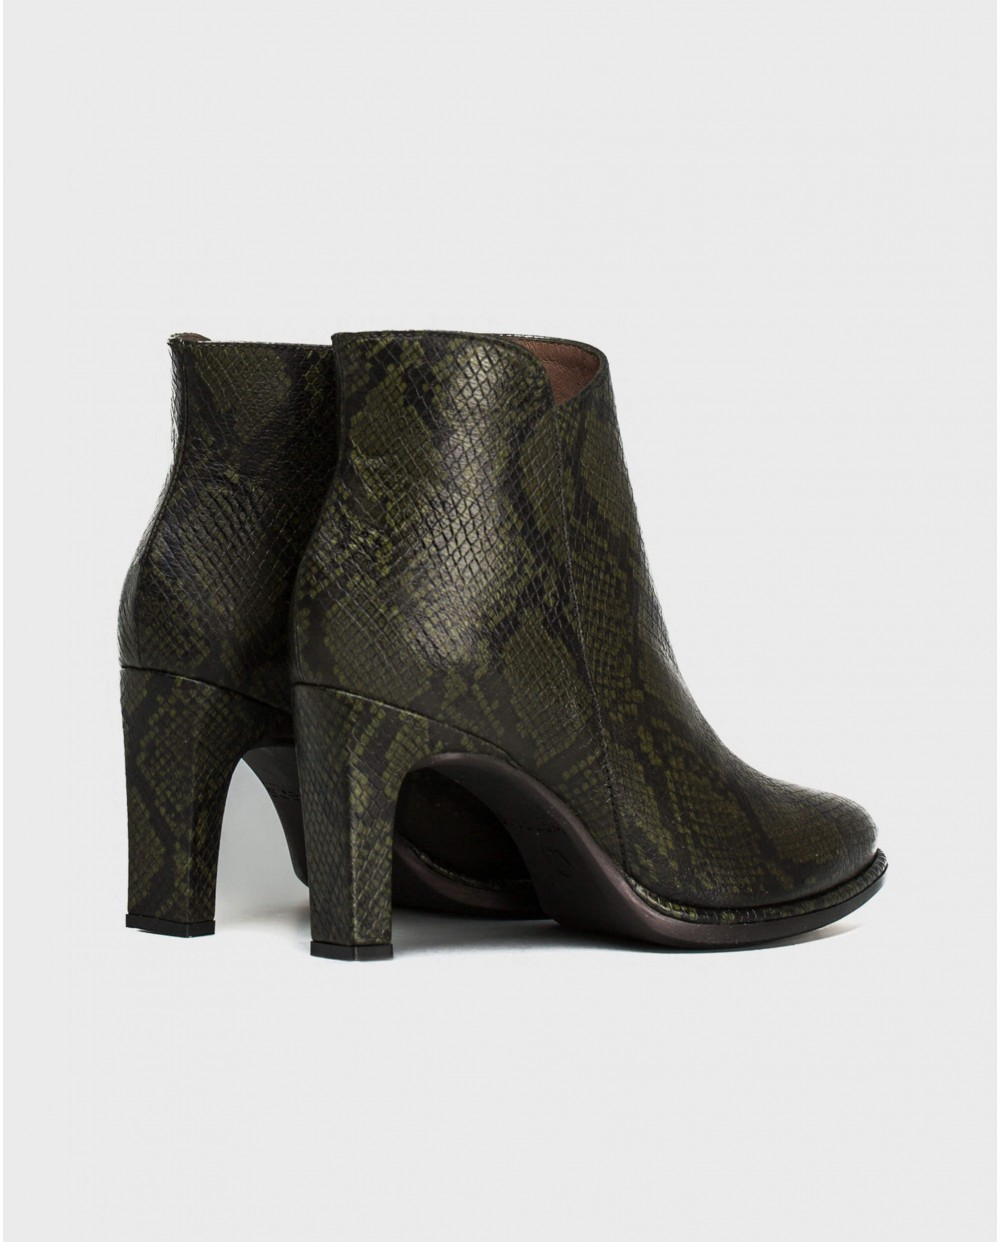 Wonders-Ankle Boots-snake print leather ankle boot